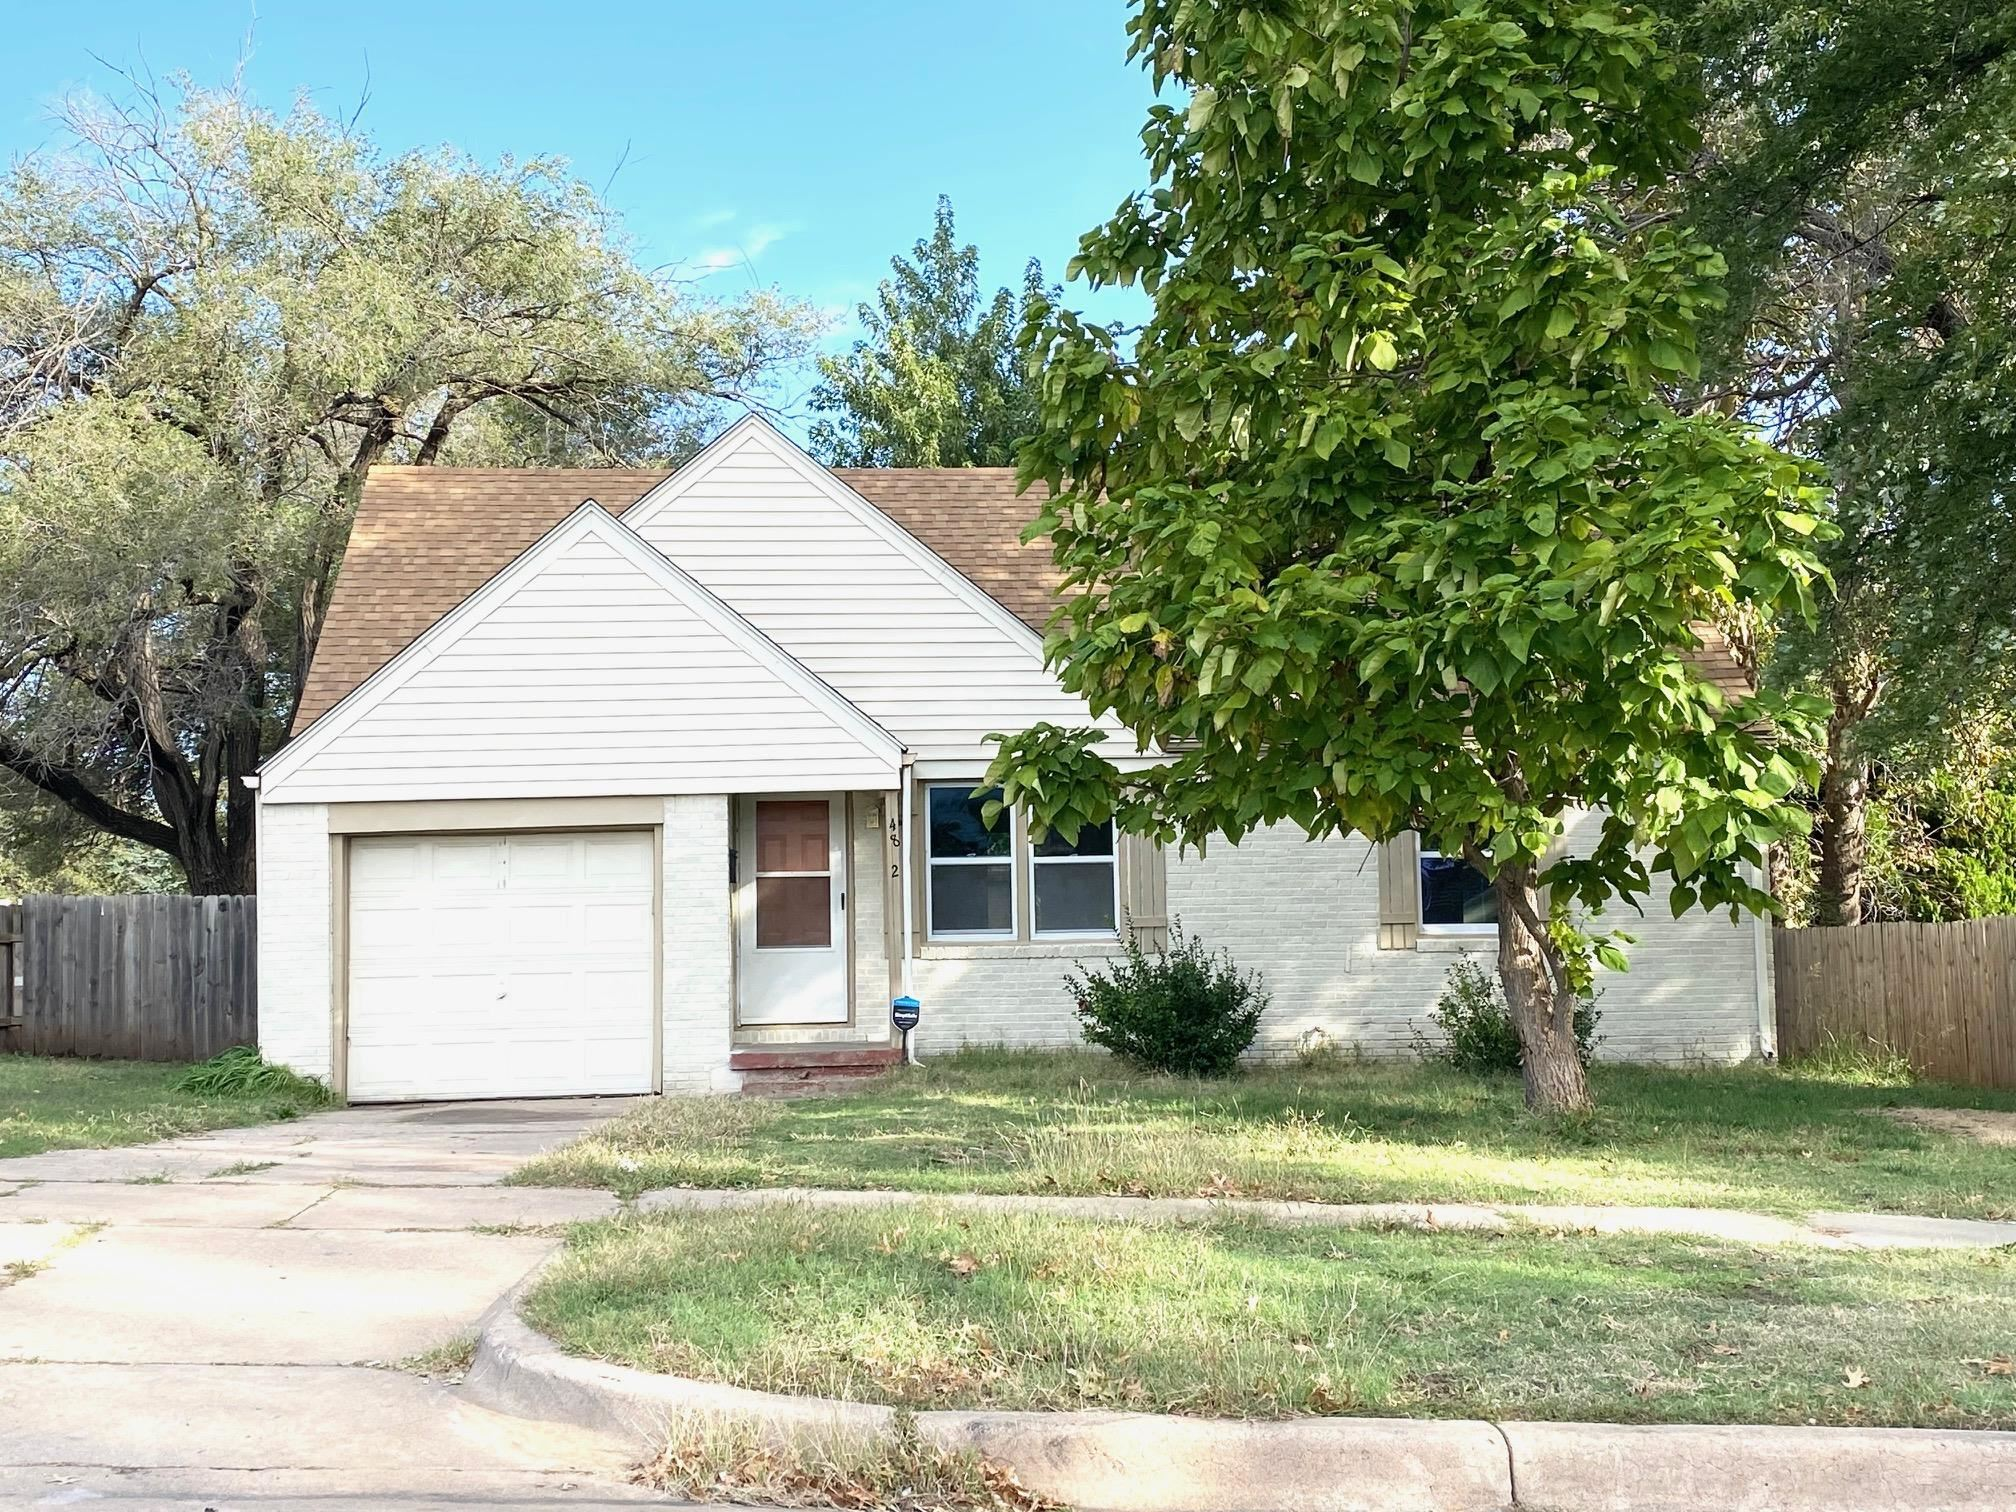 Check out this great investment opportunity:   3 bed, 1 bath with the attached garage.  The home has